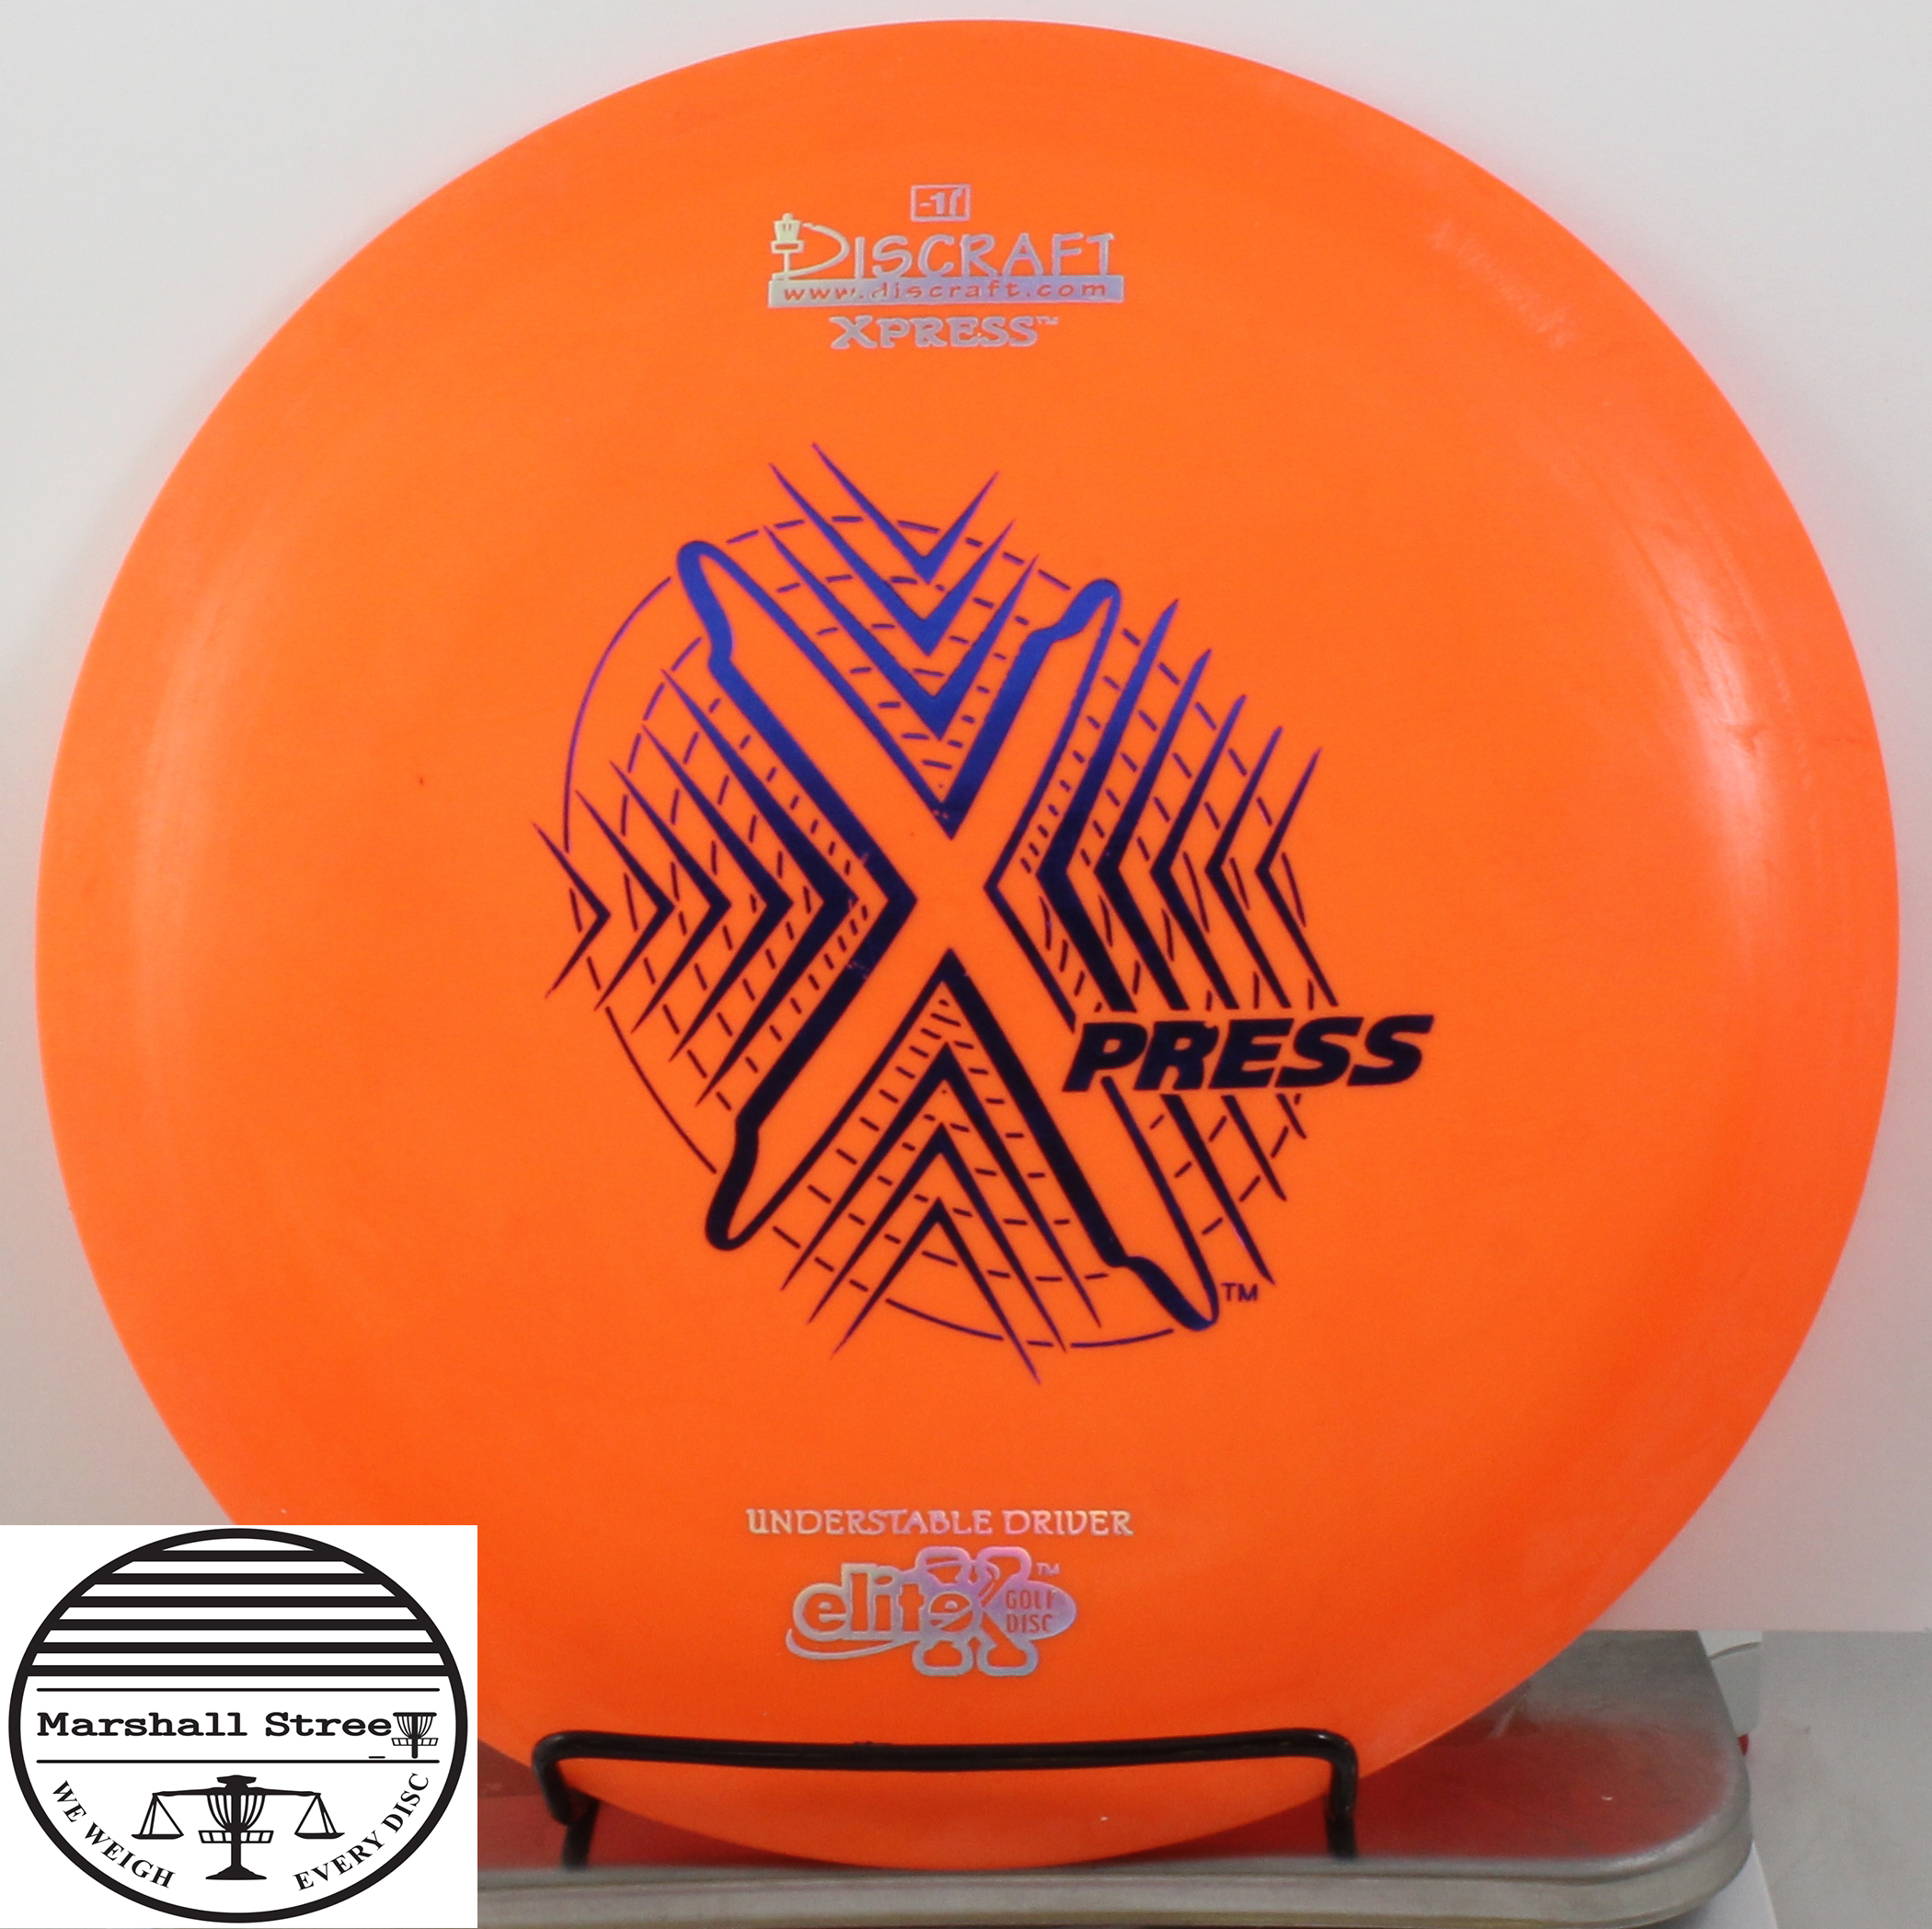 DISCRAFT XPRESS UNDERSTABLE DRIVER DOWNLOAD